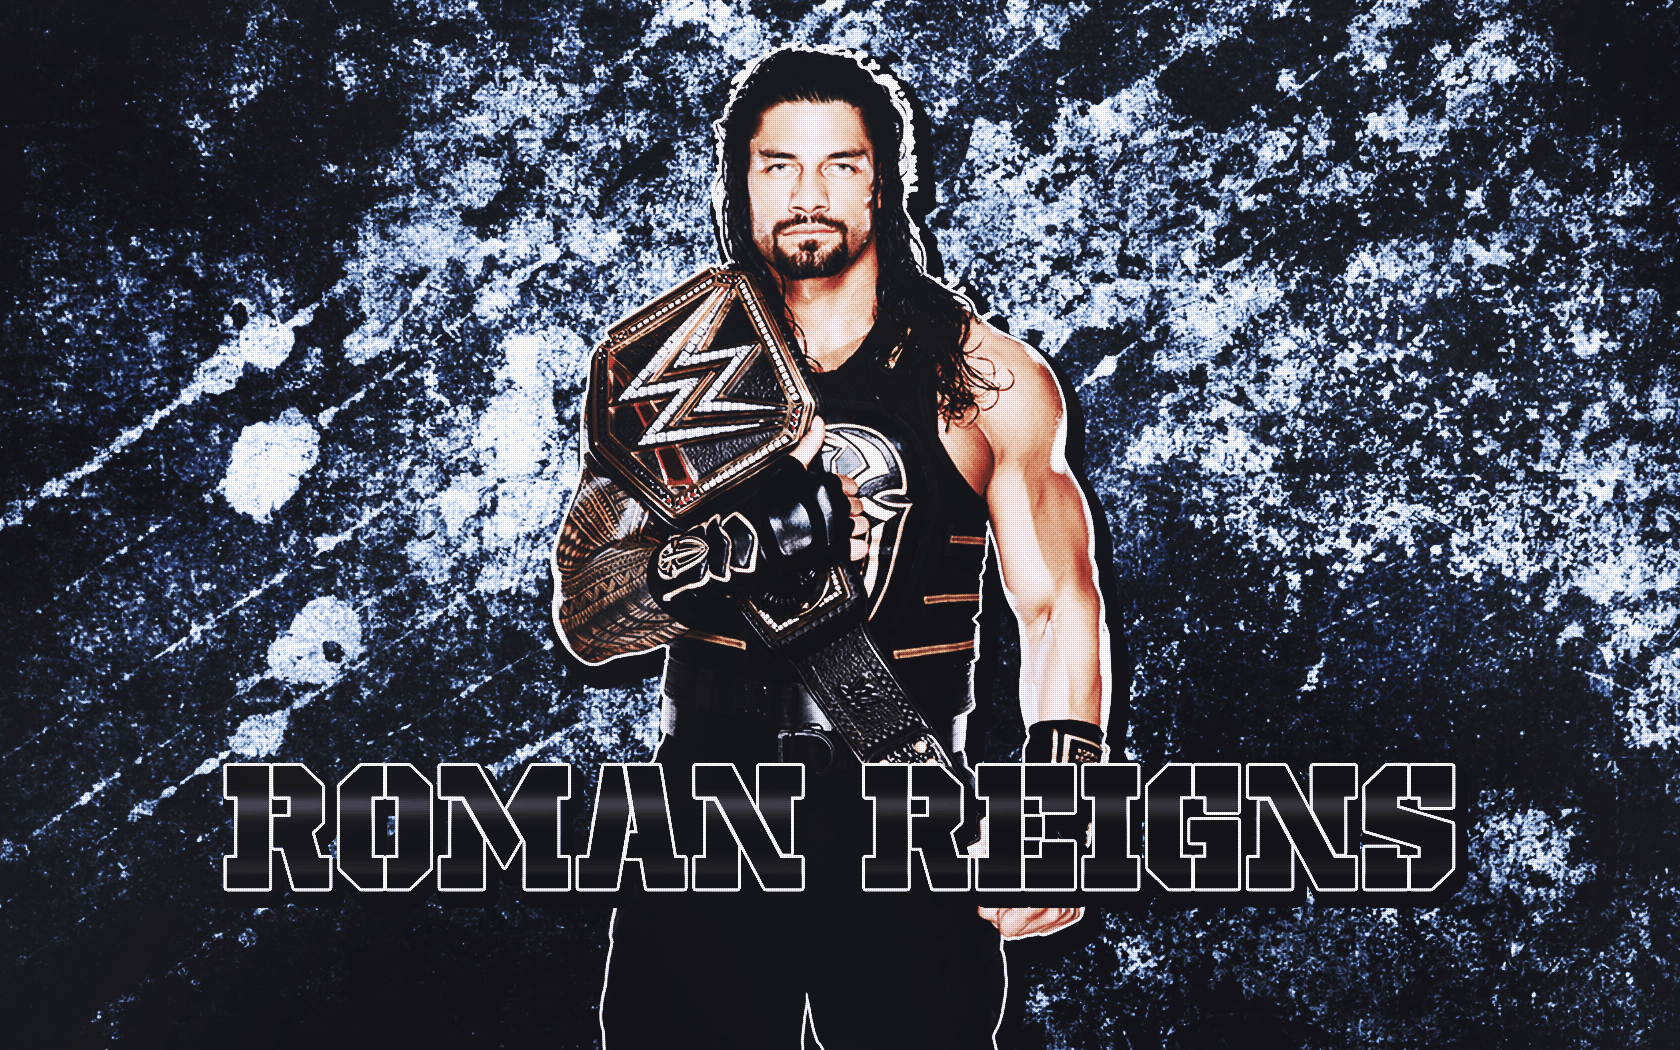 Roman Reigns HD Wallpapers - HD Wallpapers Pop